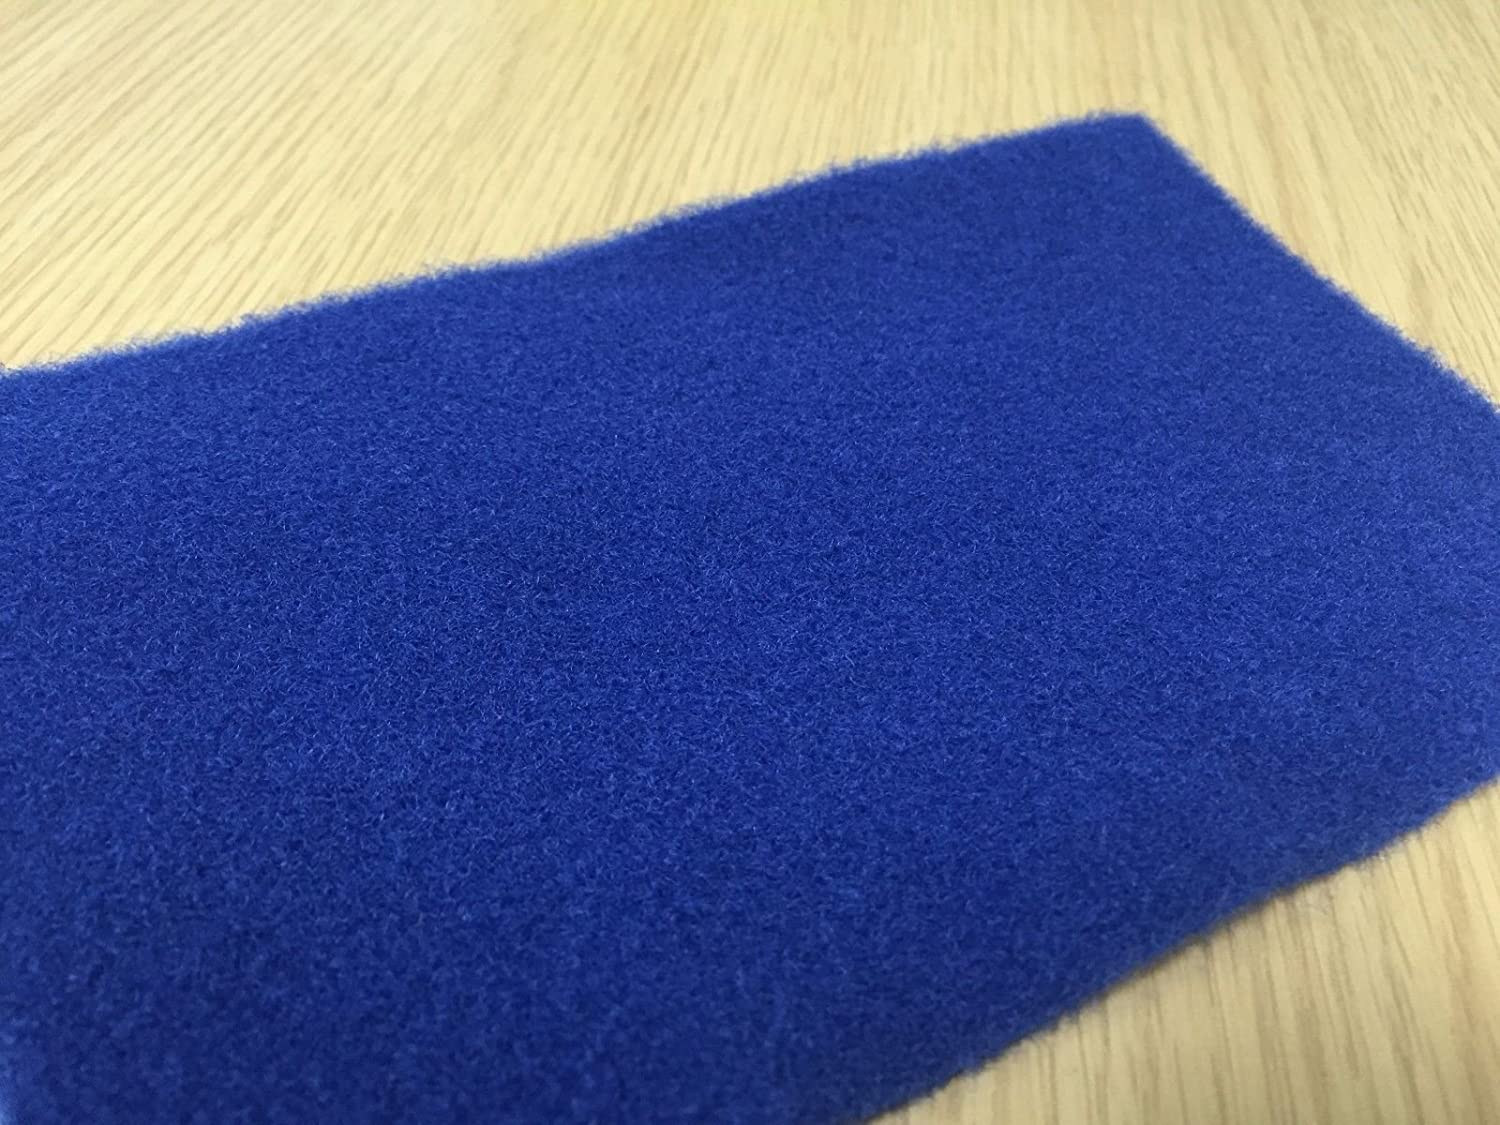 5m x 1.4m Solid Grey Coloured Choose from 6 Colours /& 30 Sizes of Van Lining Carpet Super Stretch Includes 5 x Trimfix Glue